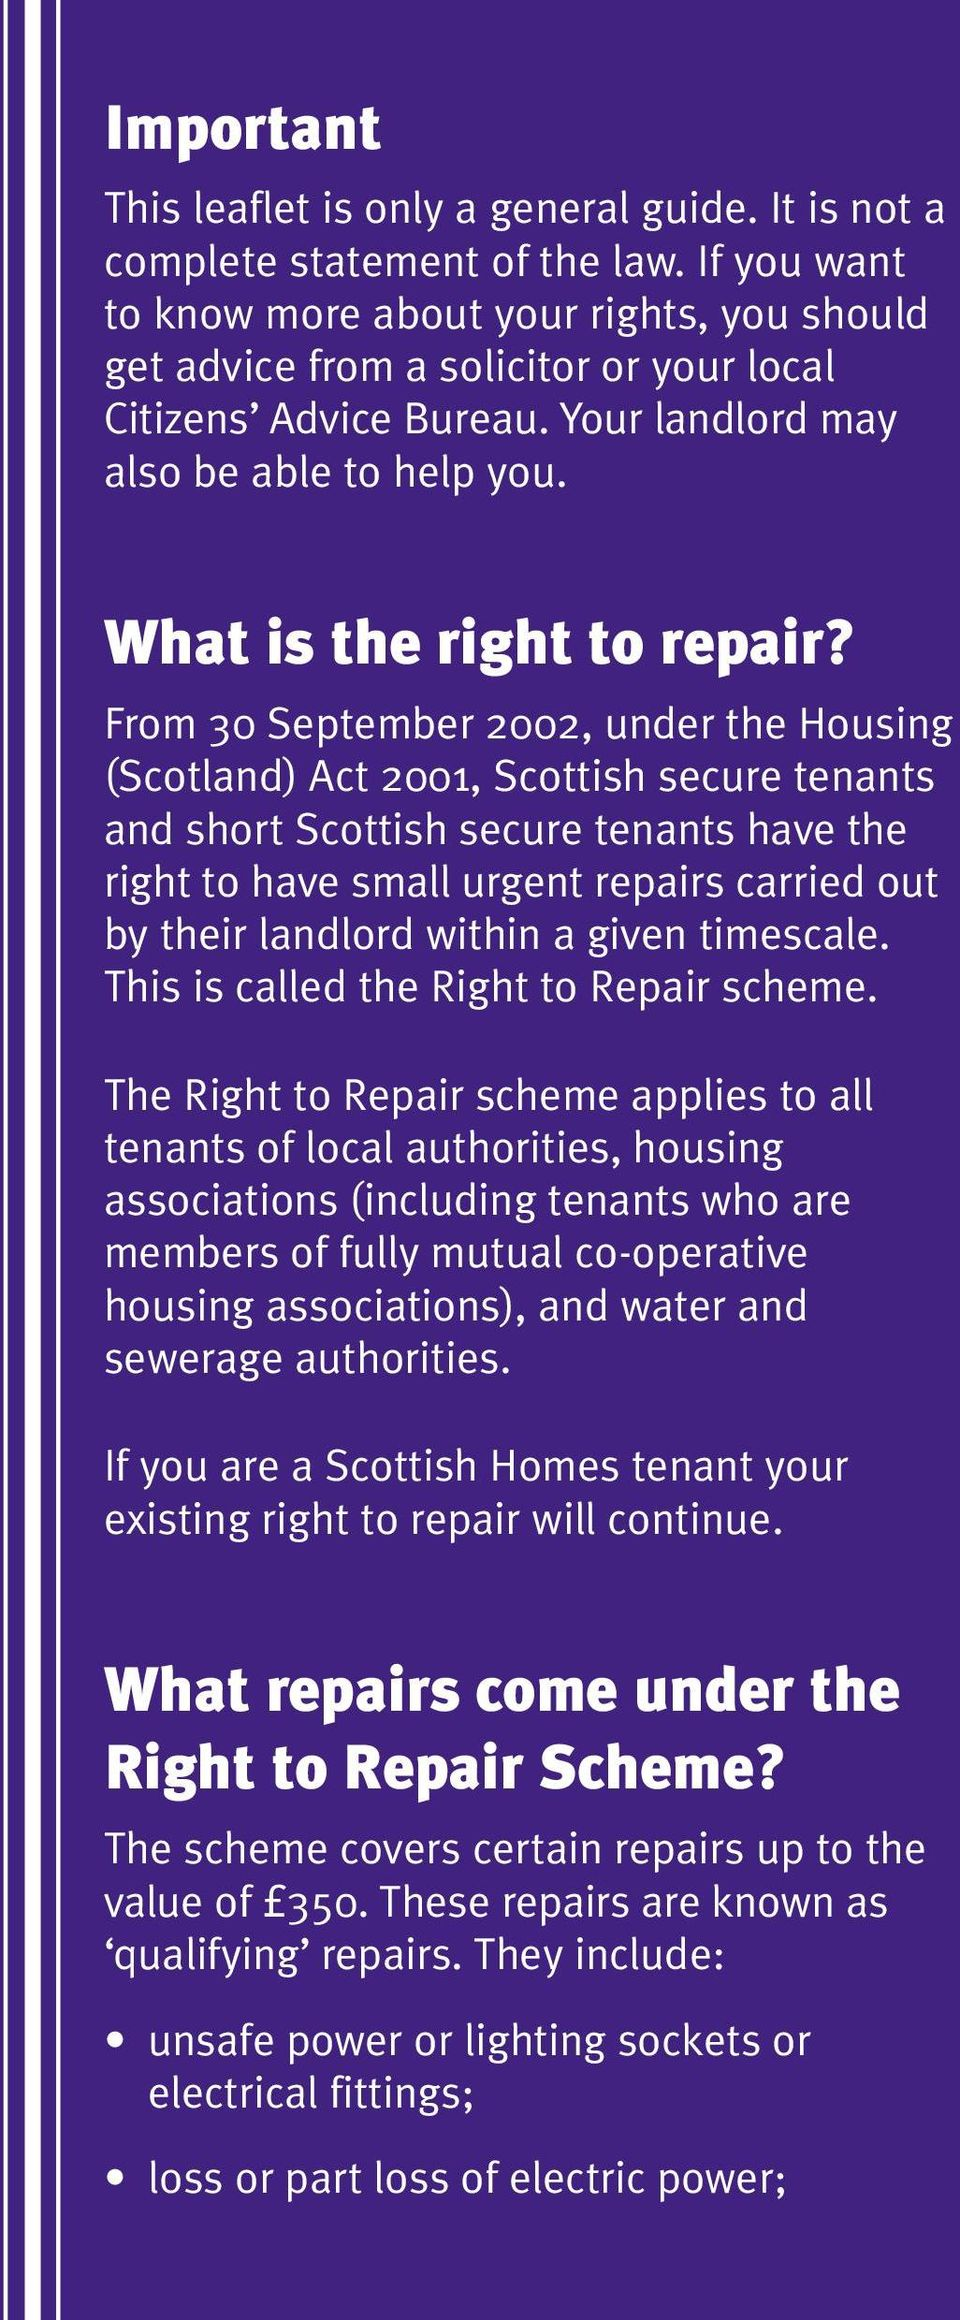 From 30 September 2002, under the Housing (Scotland) Act 2001, Scottish secure tenants and short Scottish secure tenants have the right to have small urgent repairs carried out by their landlord